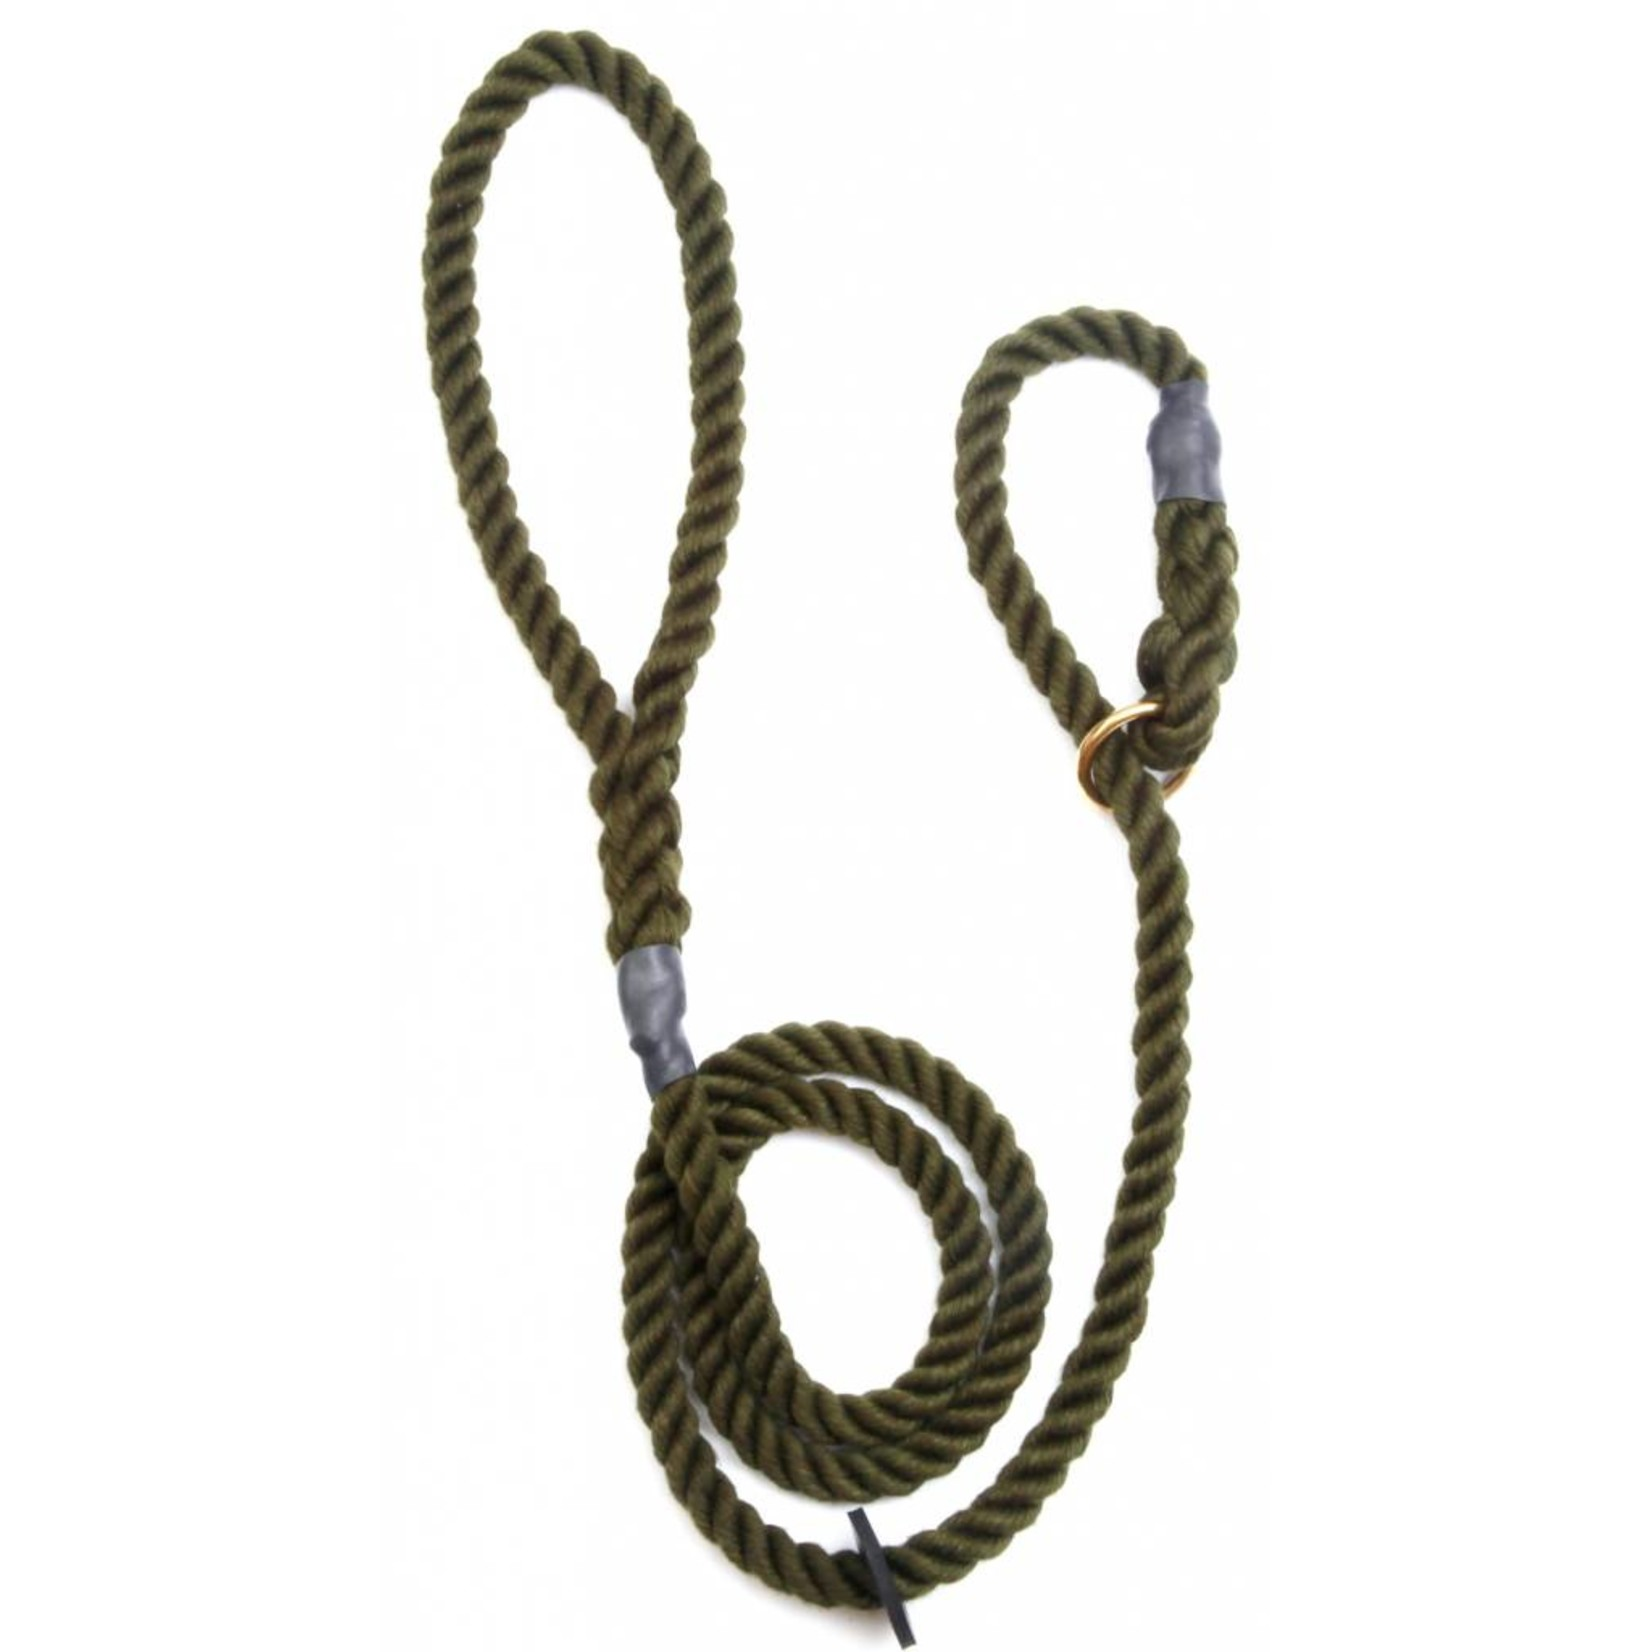 Animate 12mm x 60inch Gun Dog Slip Lead